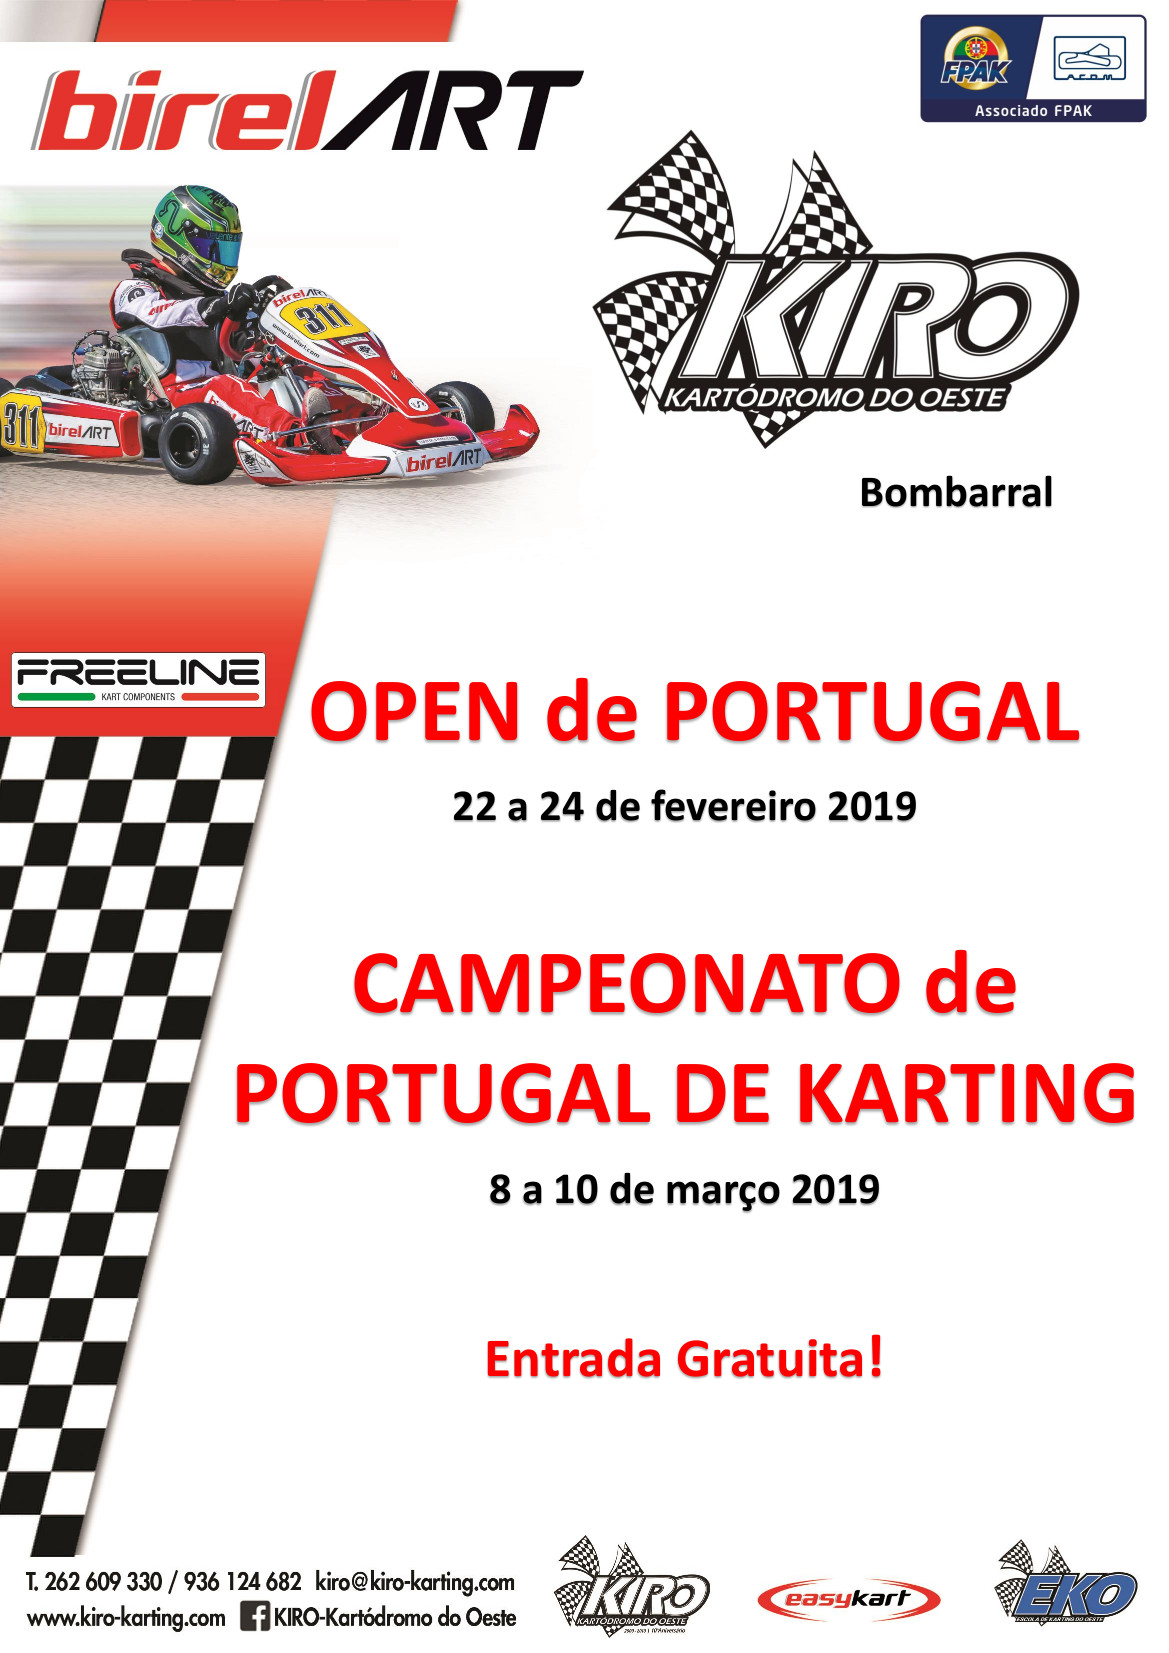 Open de Portugal - Karting